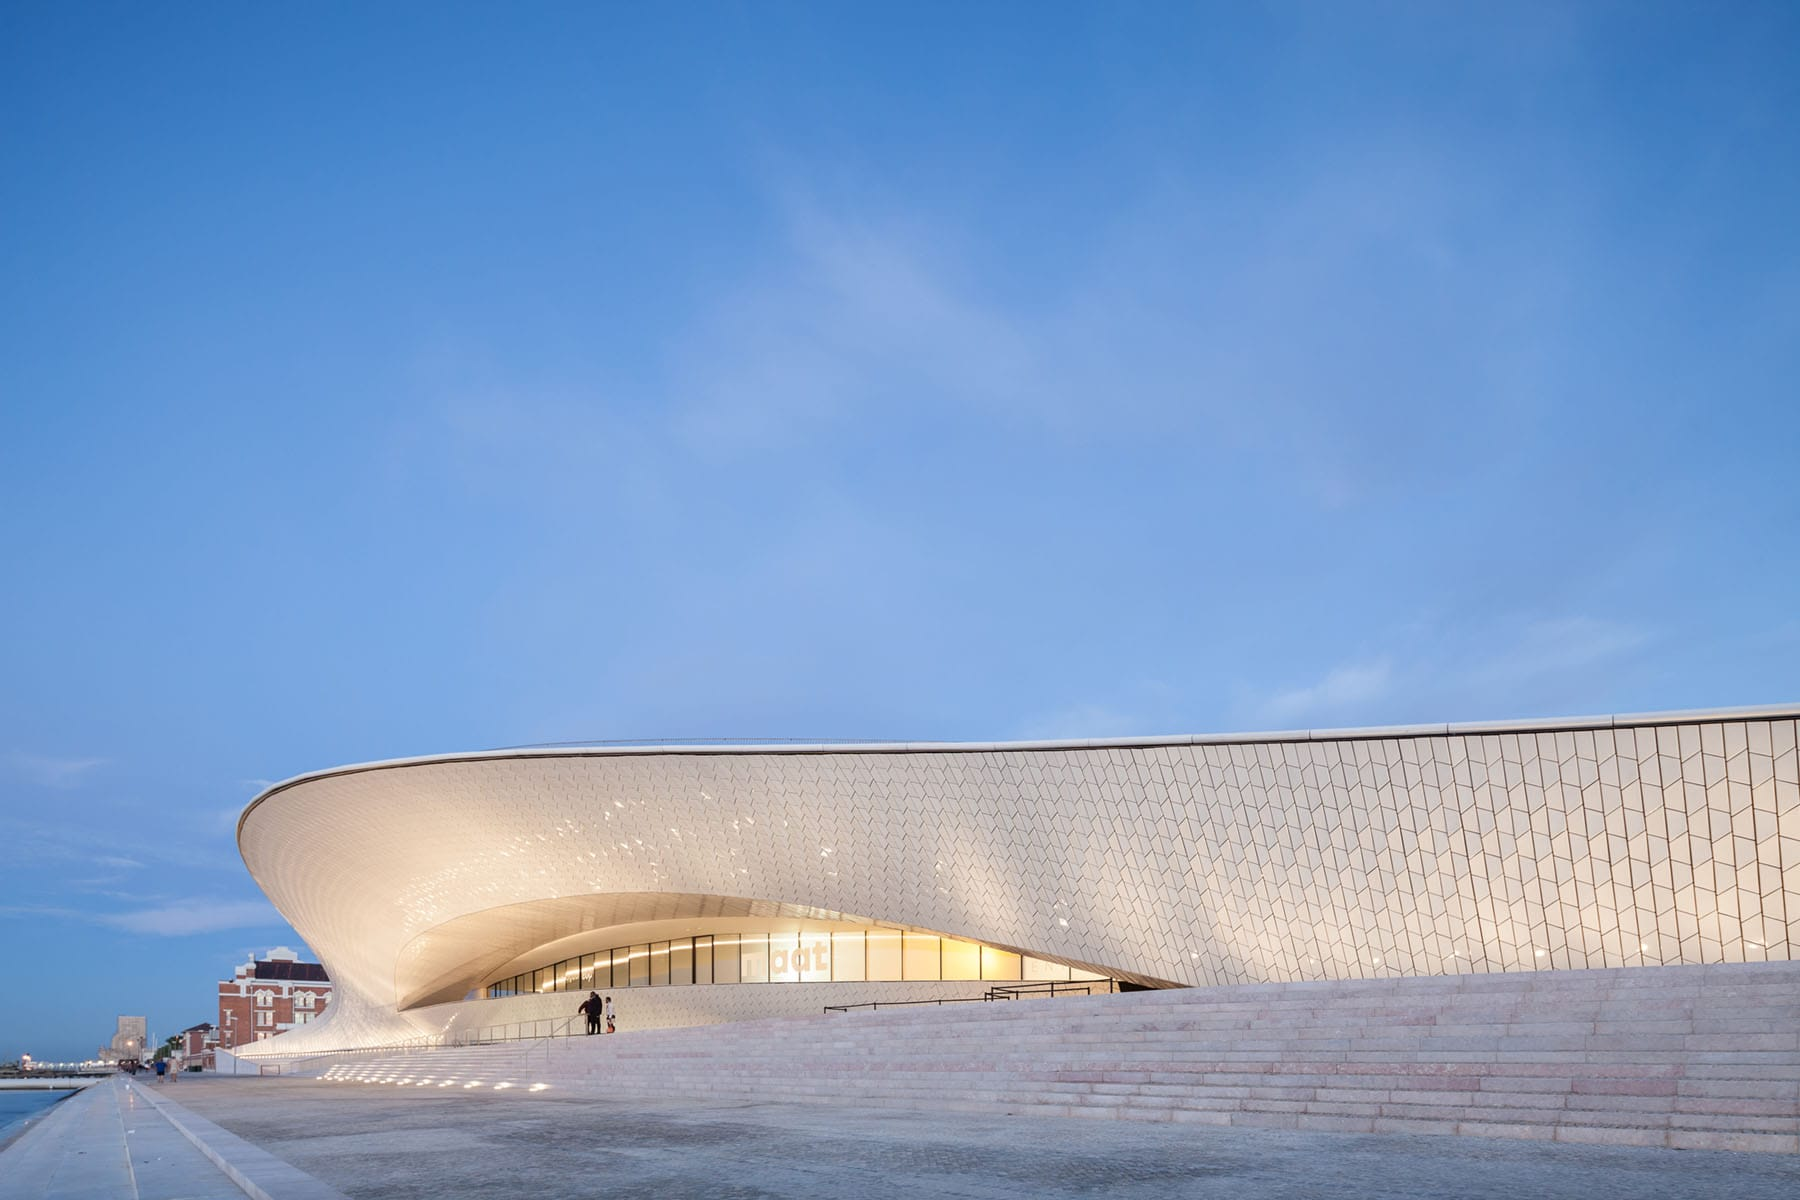 Modern Lisbon art museum with frameless glass entrance doors